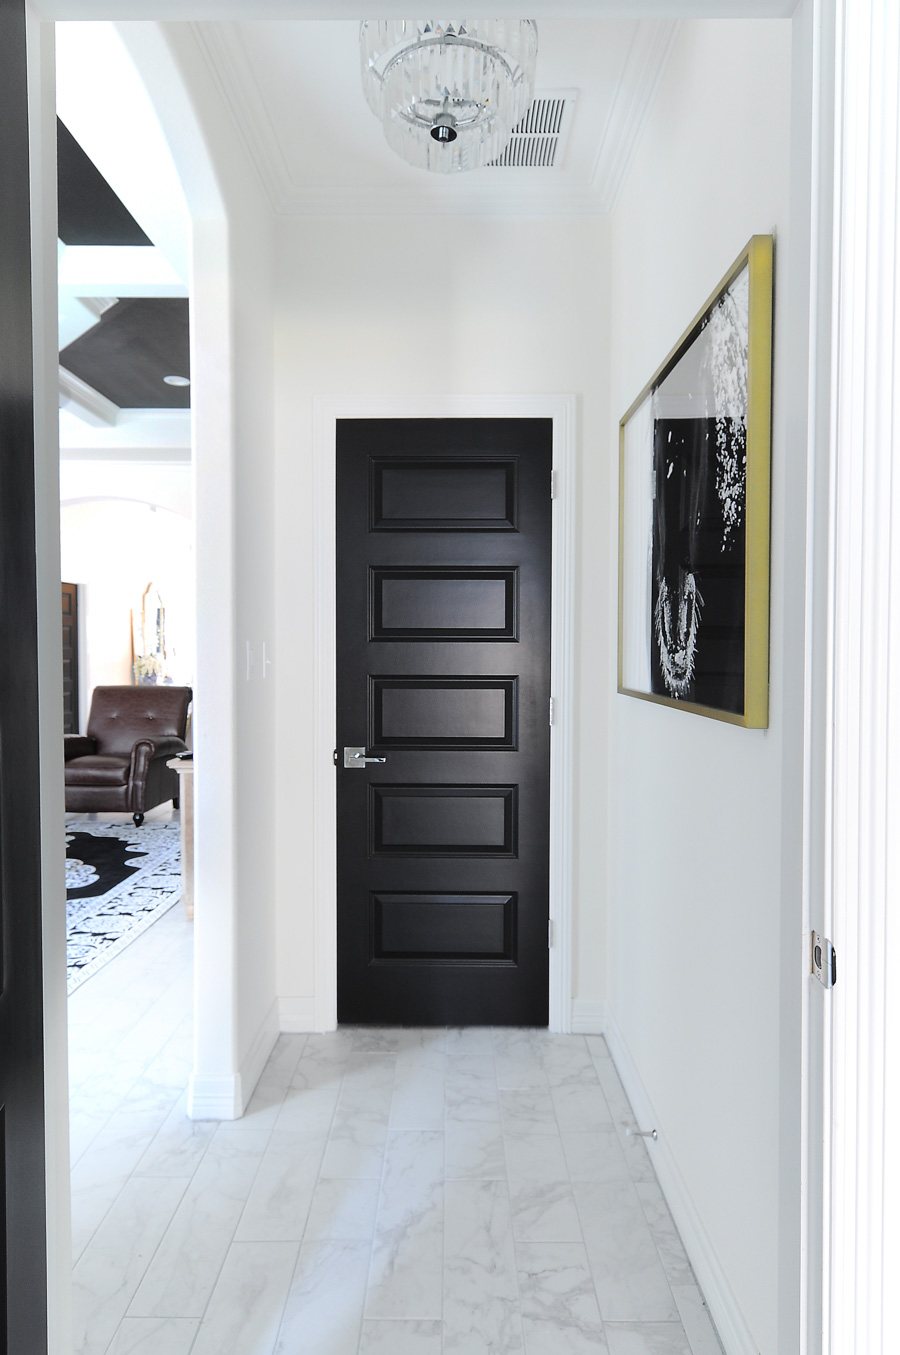 Black Interior Doors Make A Bold Statement Against White Walls In This Modern Home With Traditional